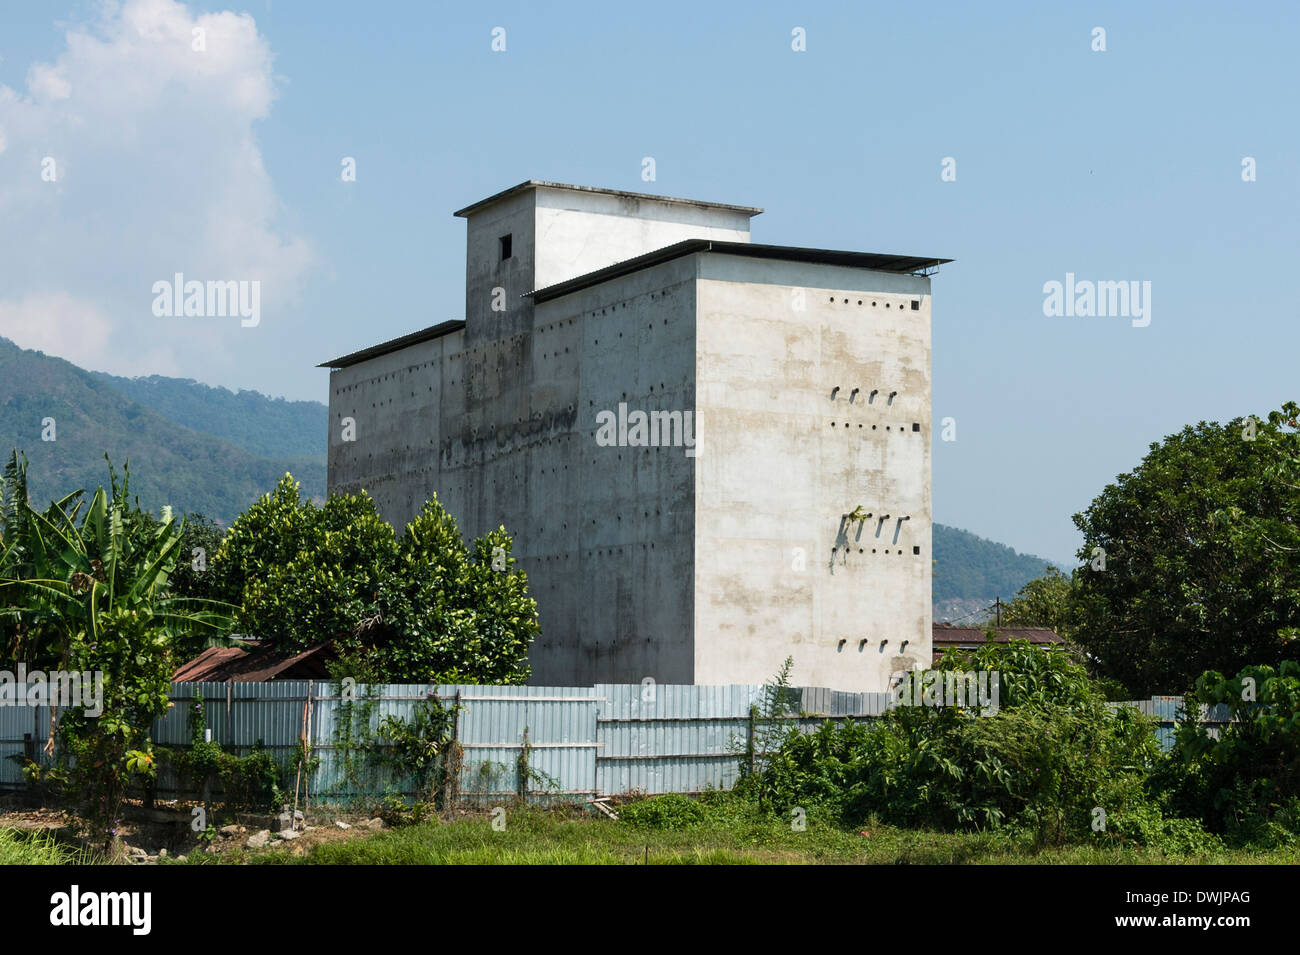 A Swiftlet farming house - Stock Image